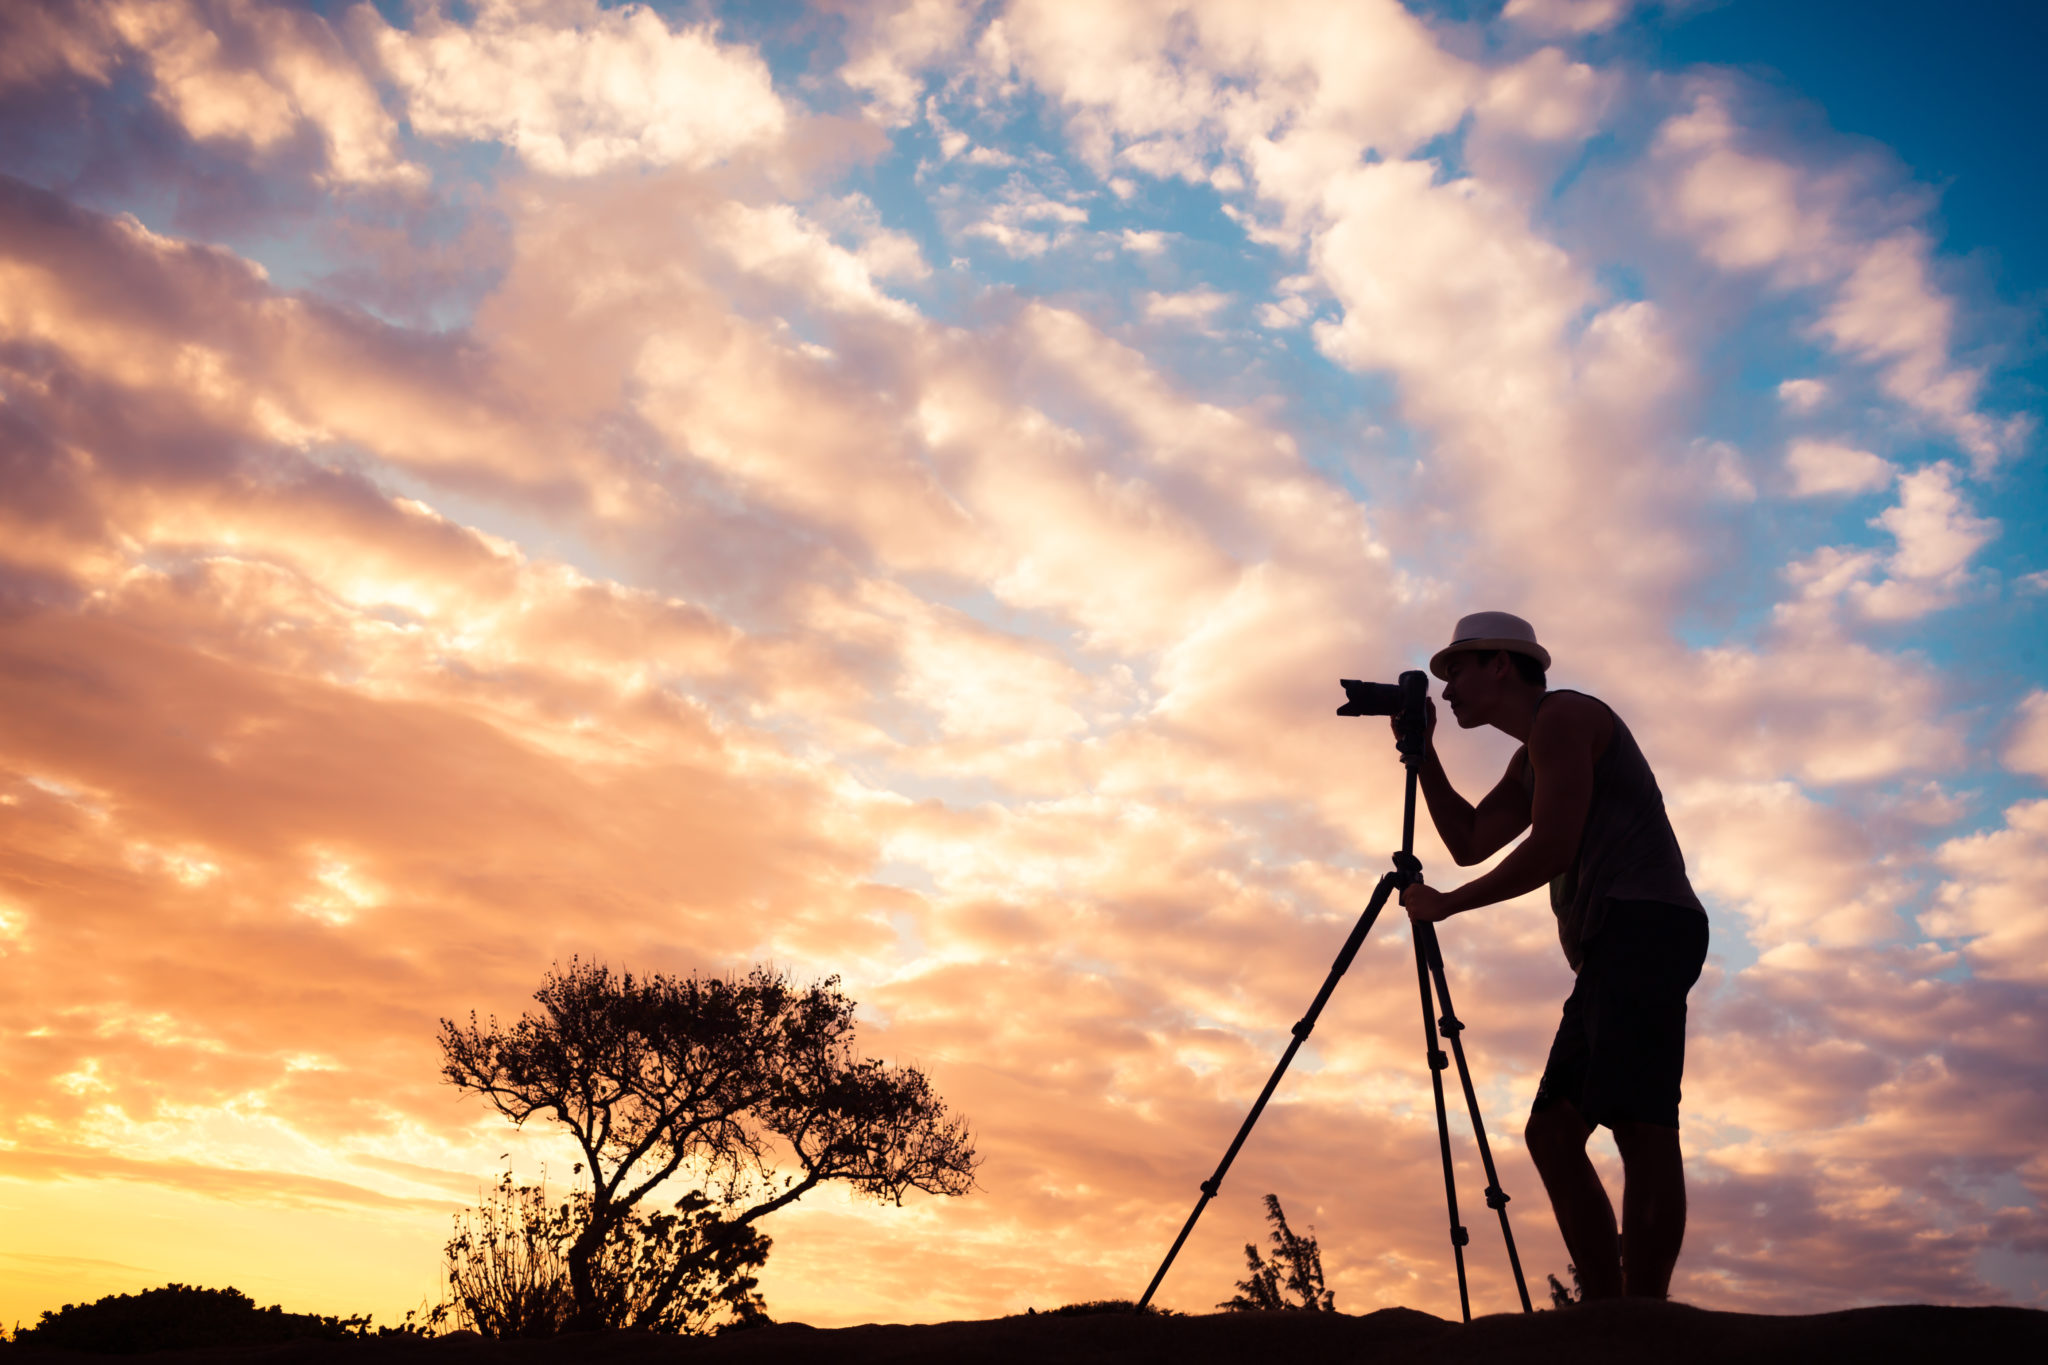 If you have a skill, like photography, you can turn it into a coaching business